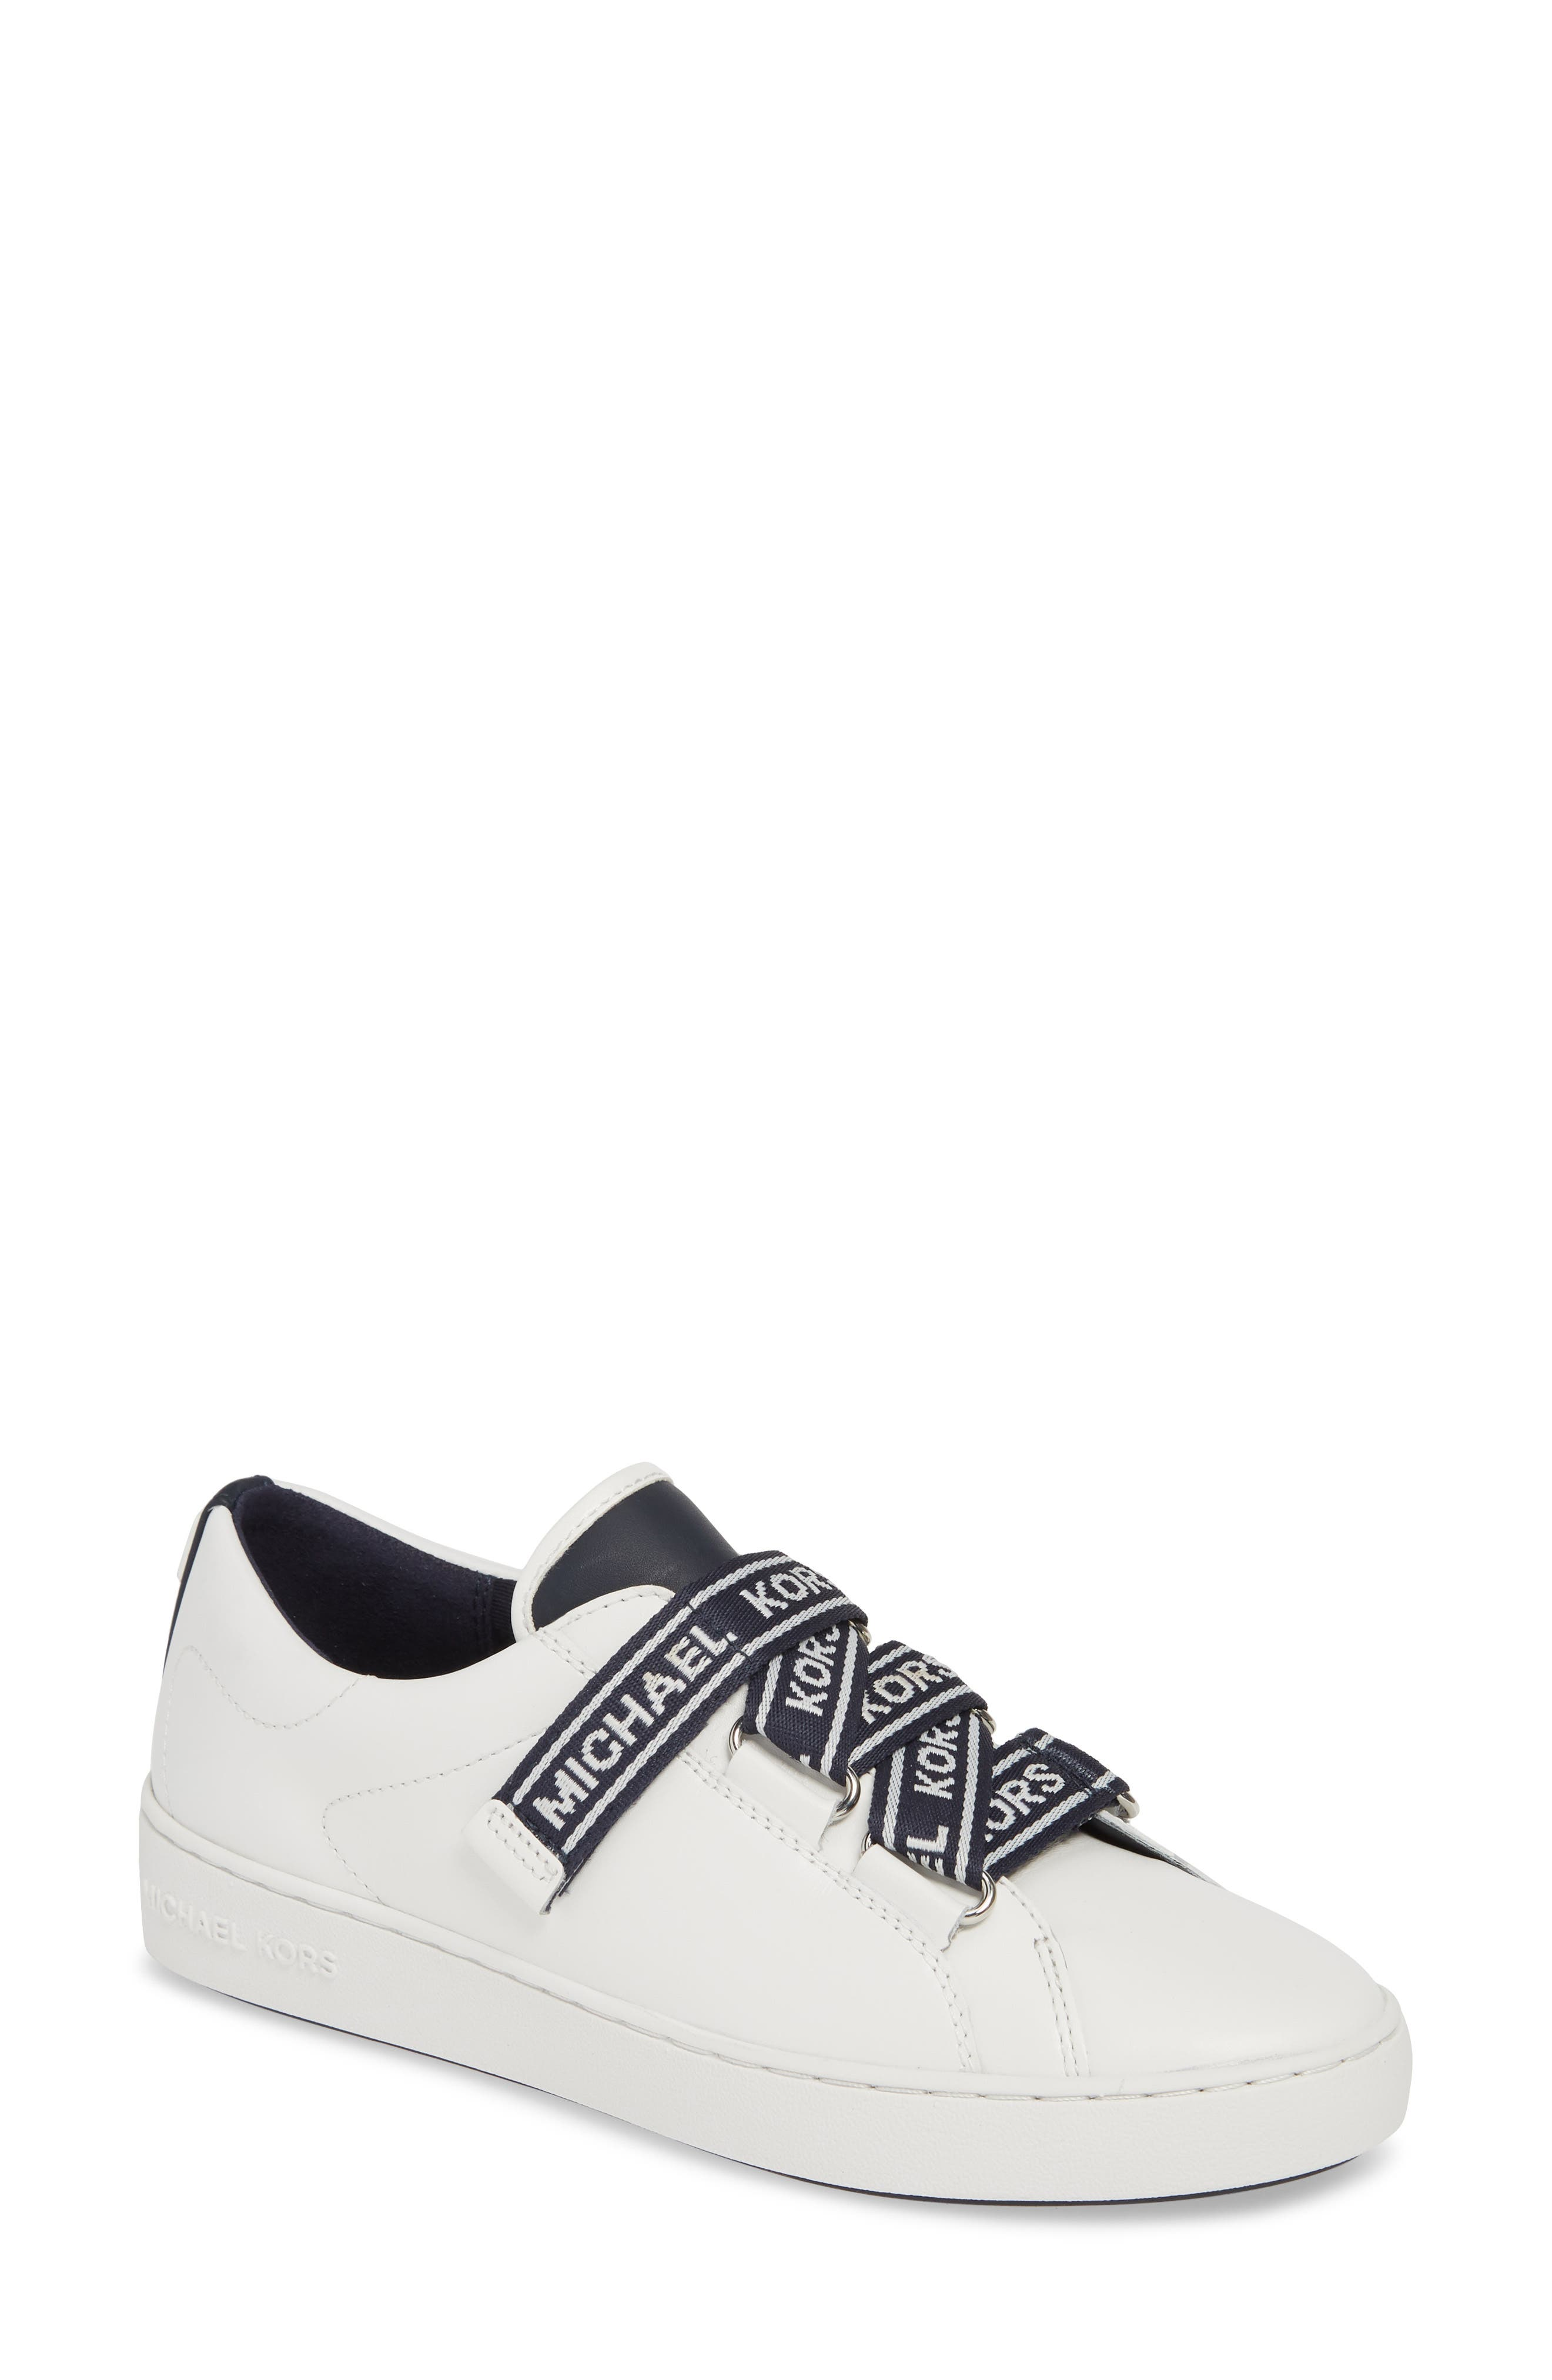 MICHAEL MICHAEL KORS, Casey Low Top Sneaker, Main thumbnail 1, color, ADMIRAL/ WHITE